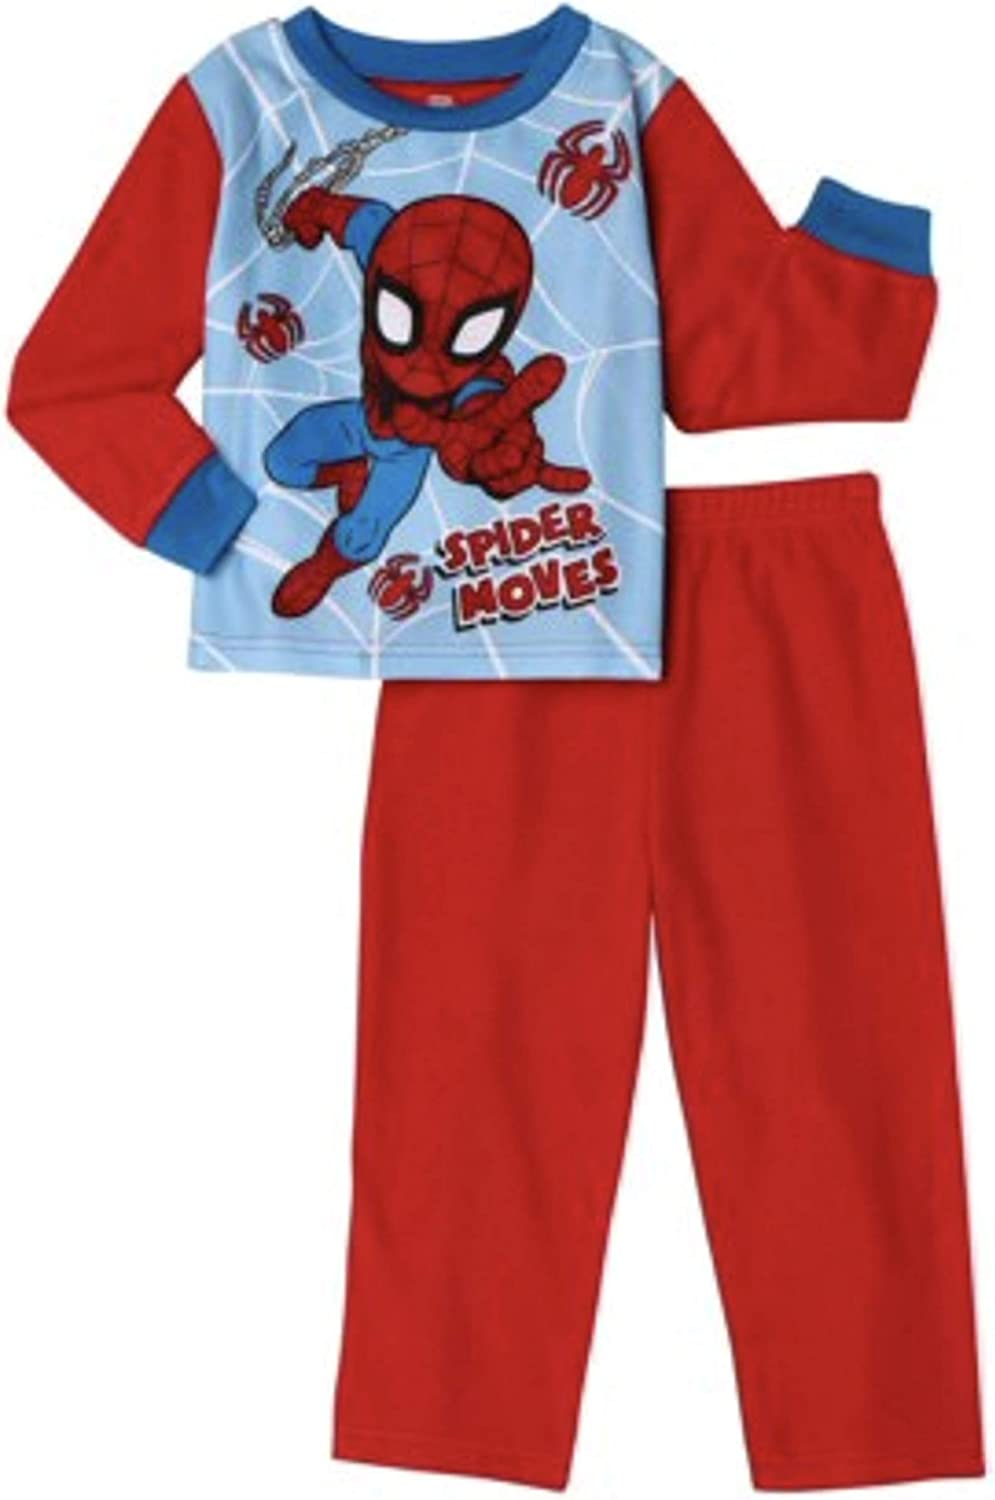 Spiderman Pajamas 2-Piece Spider Moves Long Sleeve PJ Set for Toddlers